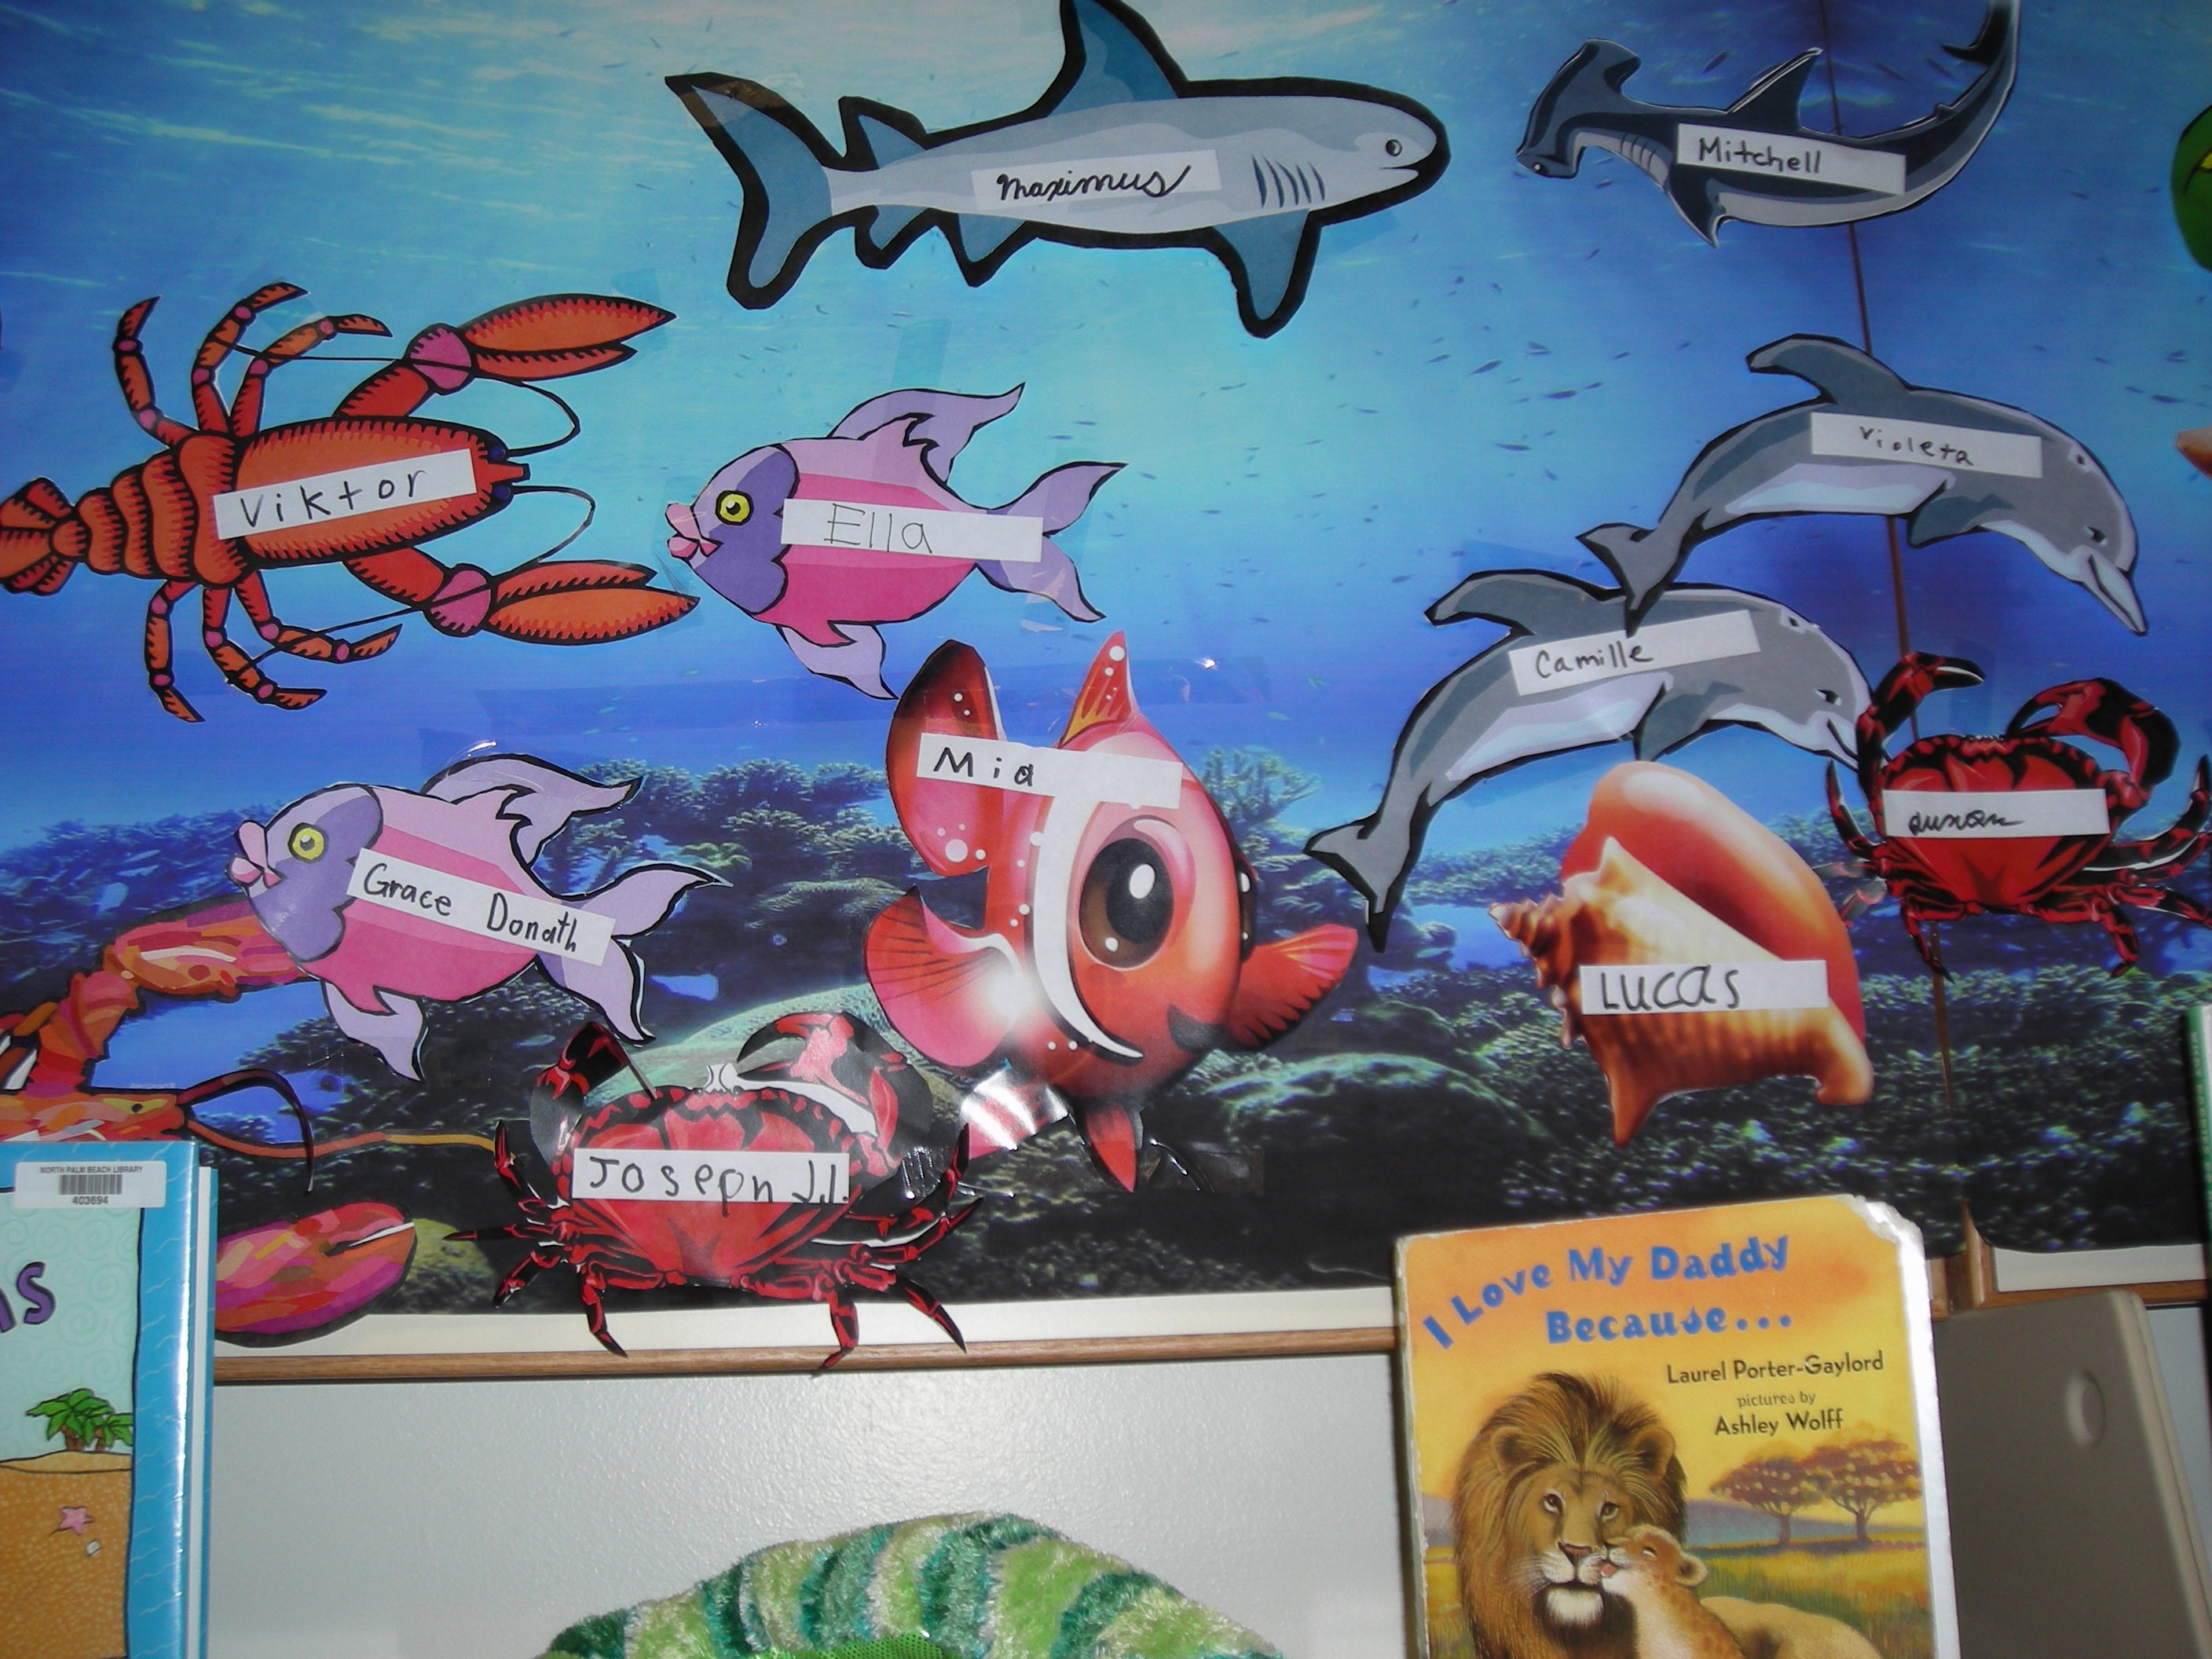 Children have written their names on the fish decorating the wall